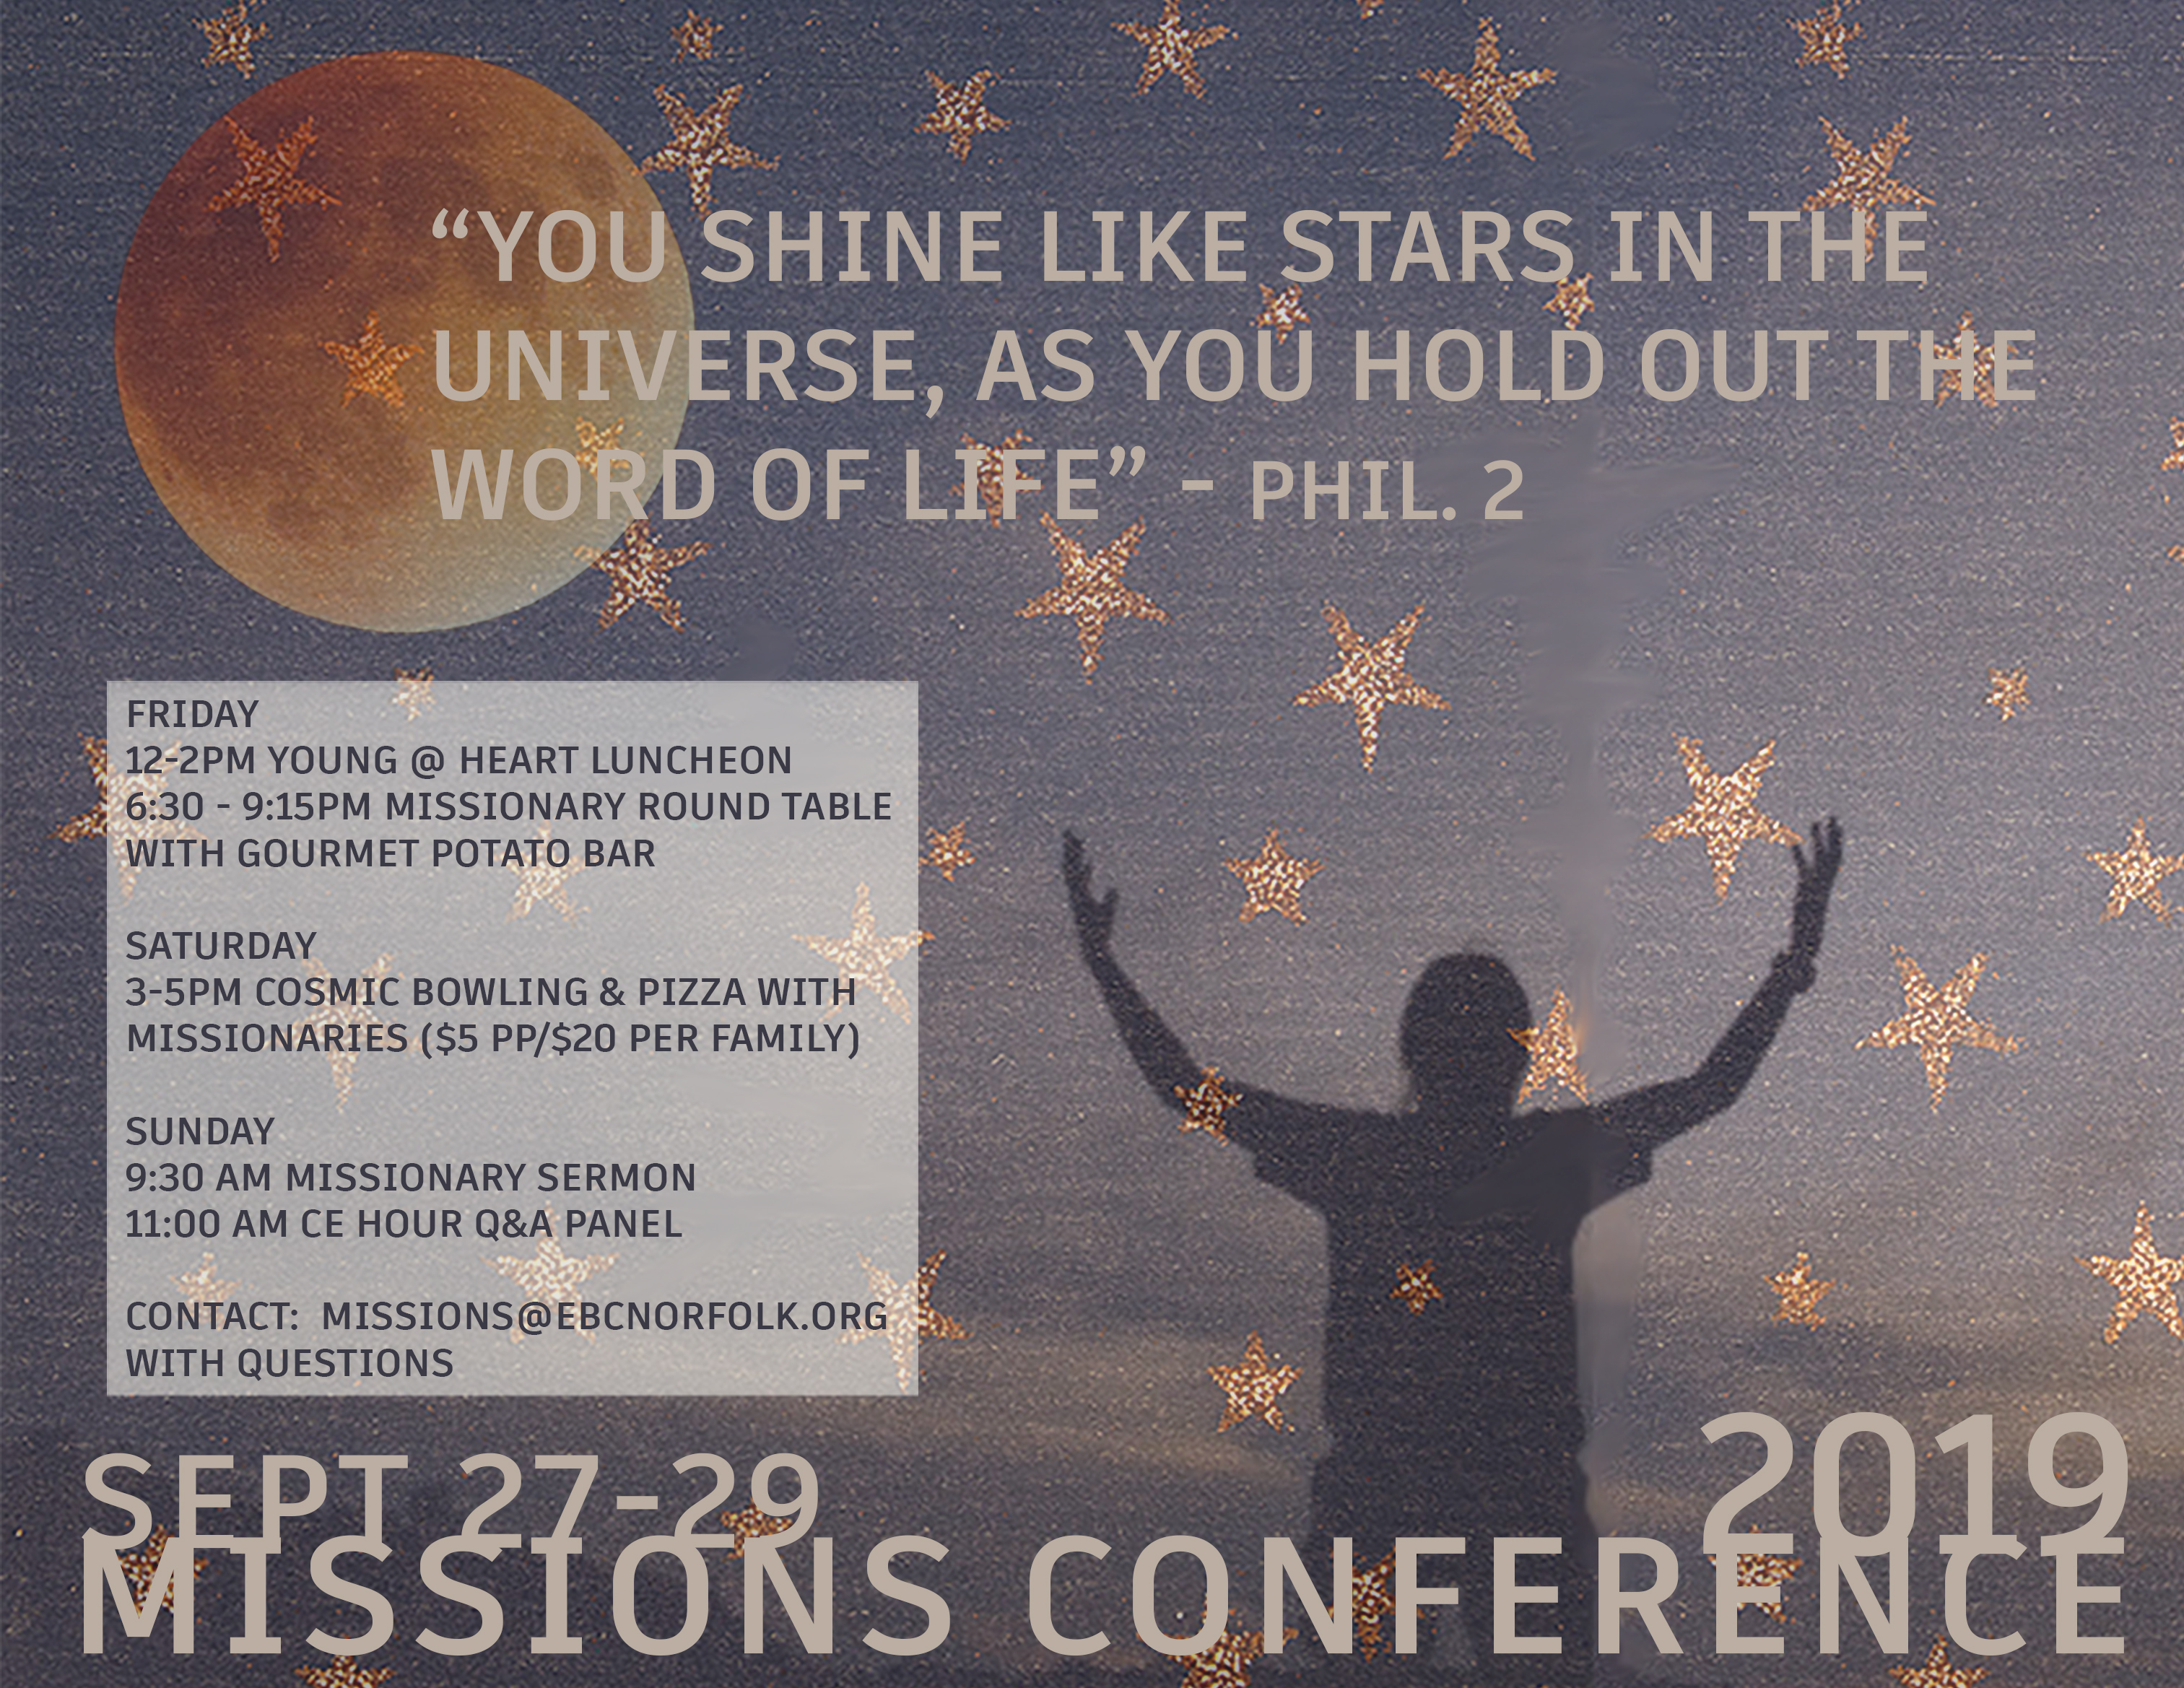 Missions Conference Flyer (Sept 27-29, 2019) image